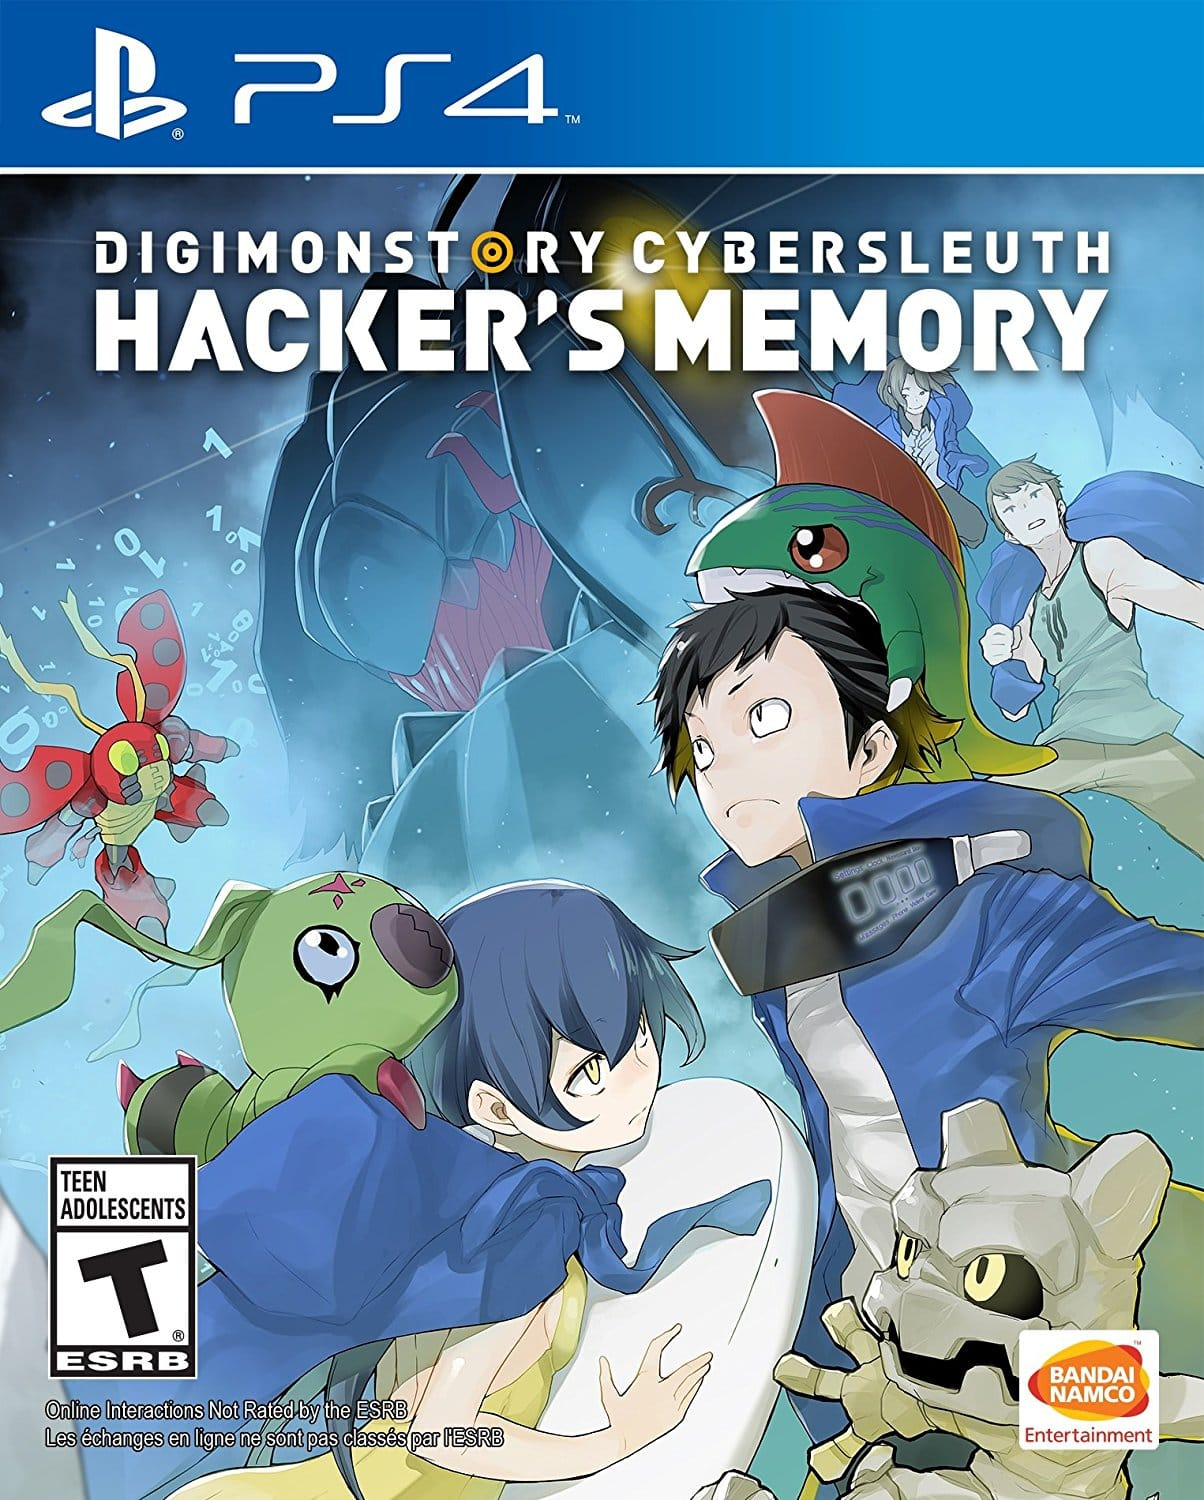 Digimon Story Cyber Sleuth: Hacker's Memory (PlayStation 4) $25.78